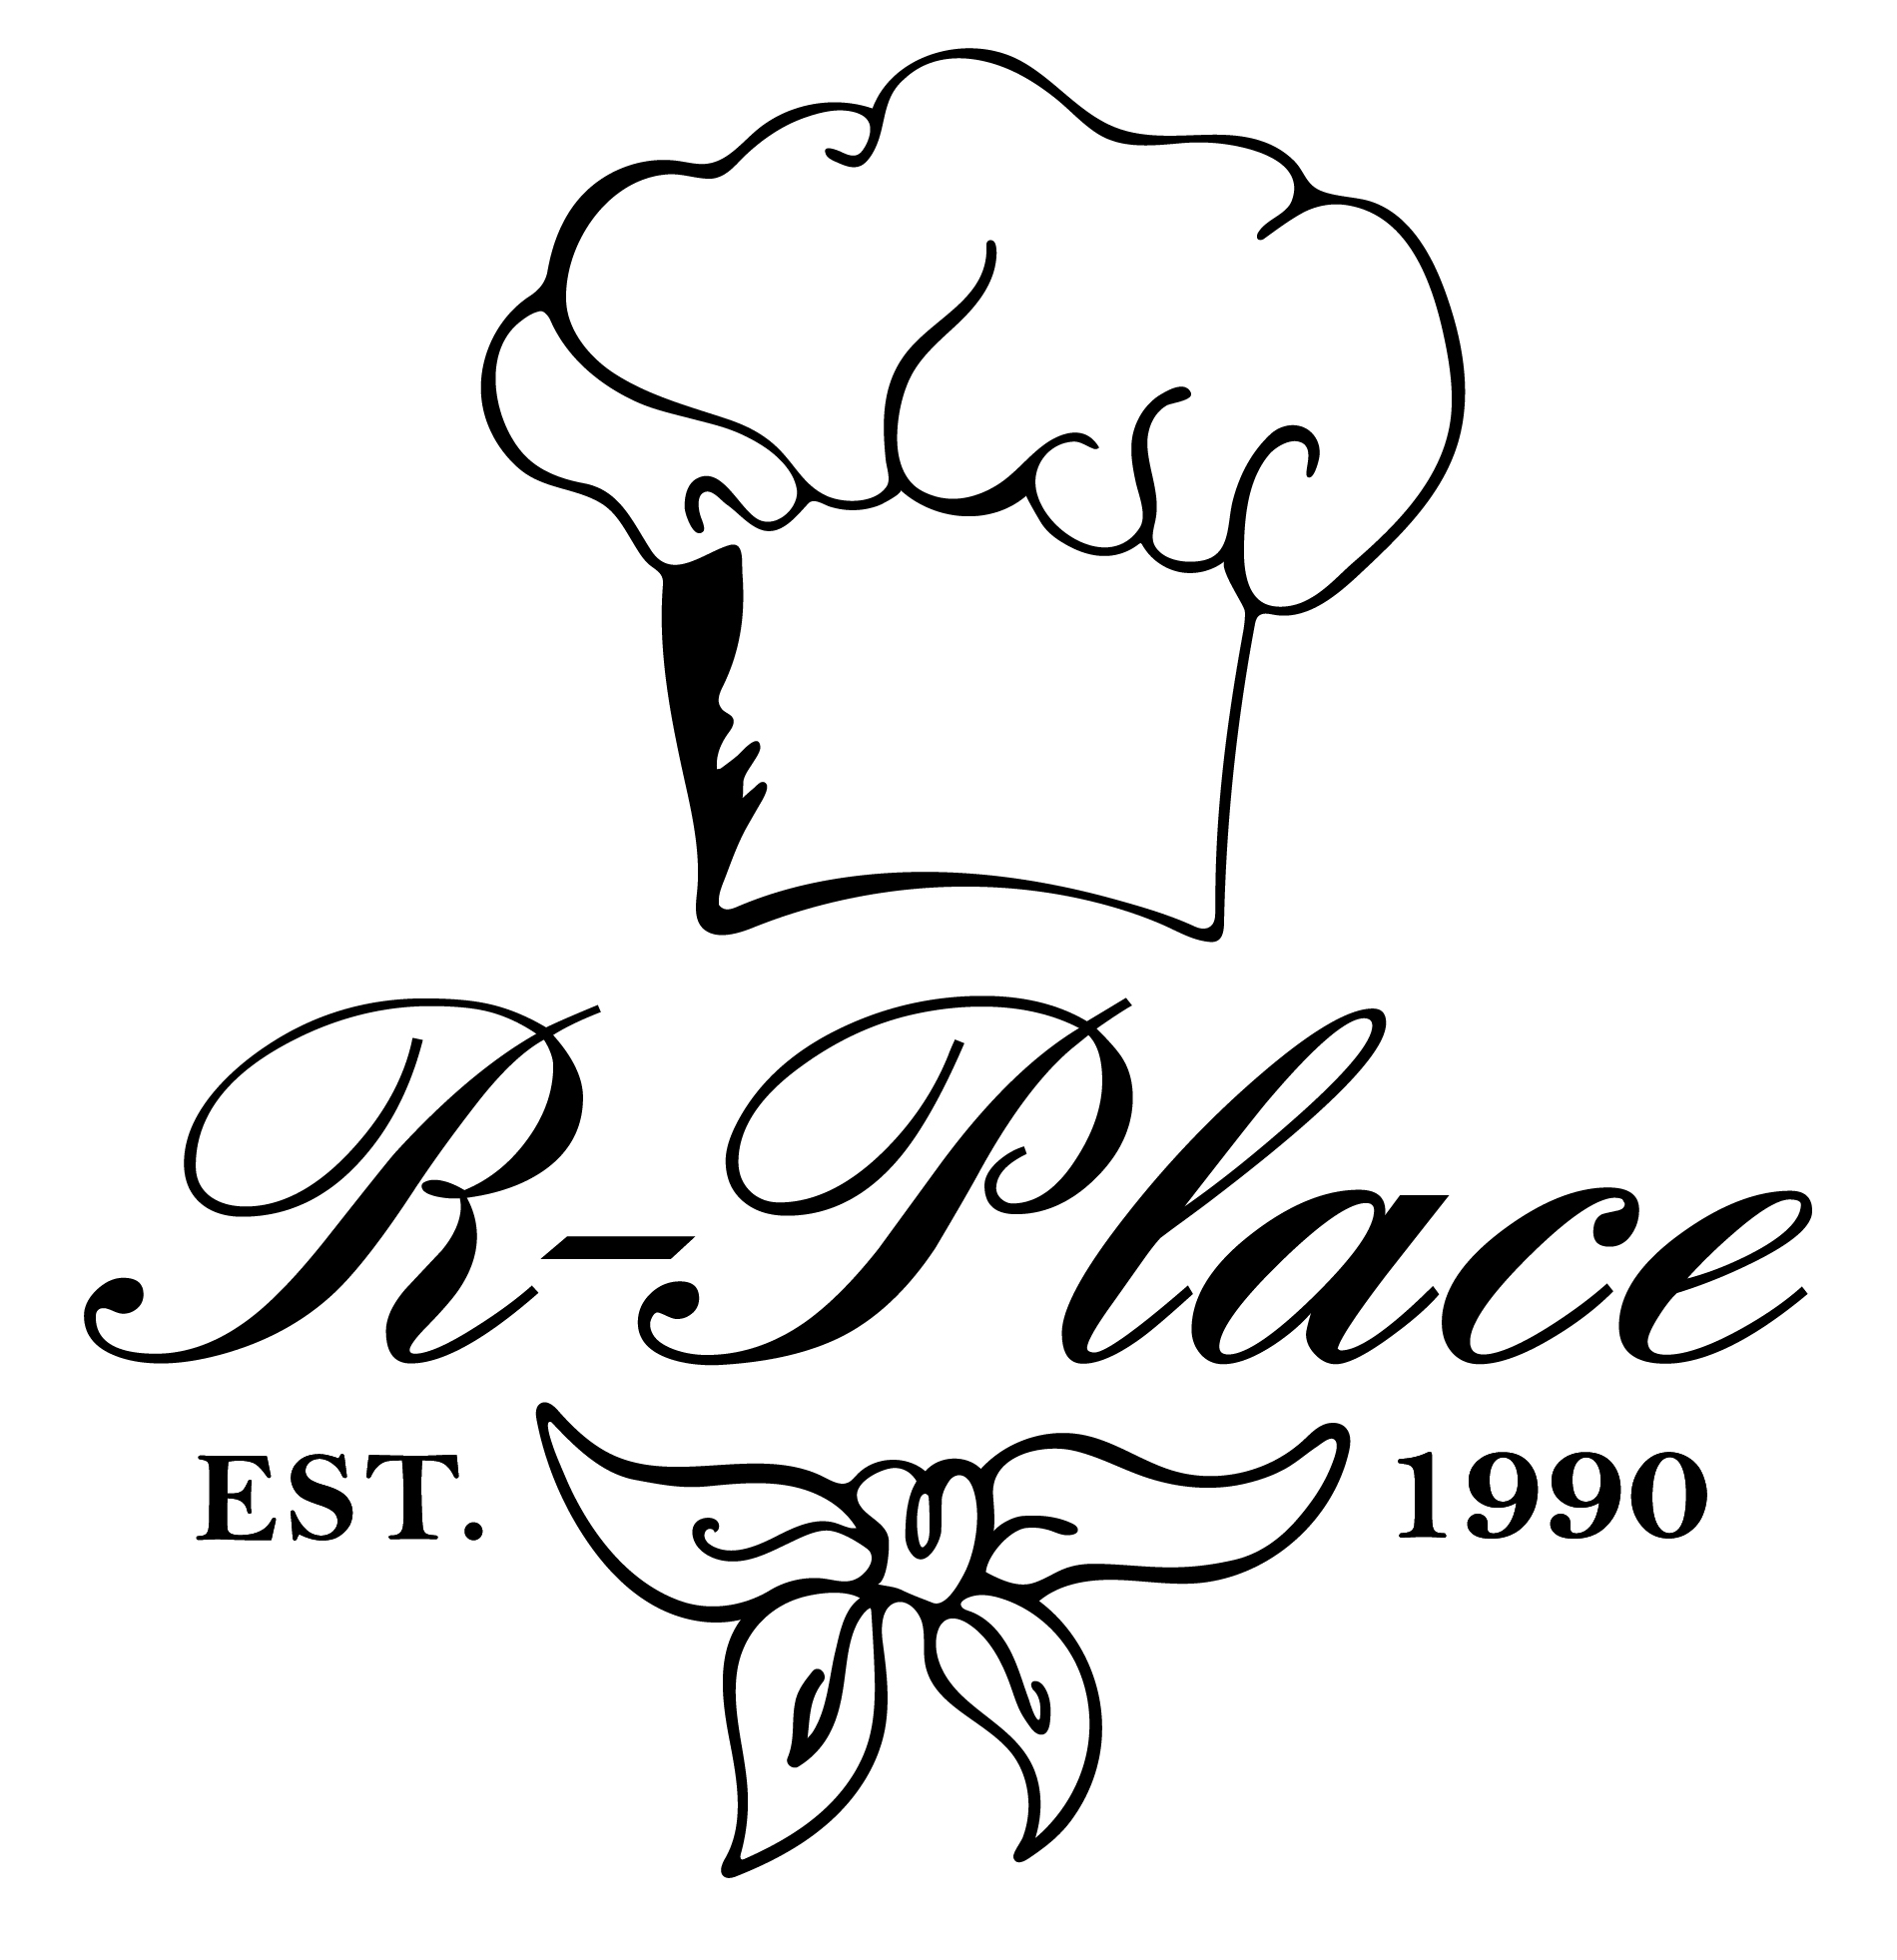 R-Place Restaurant, Catering & Bakery